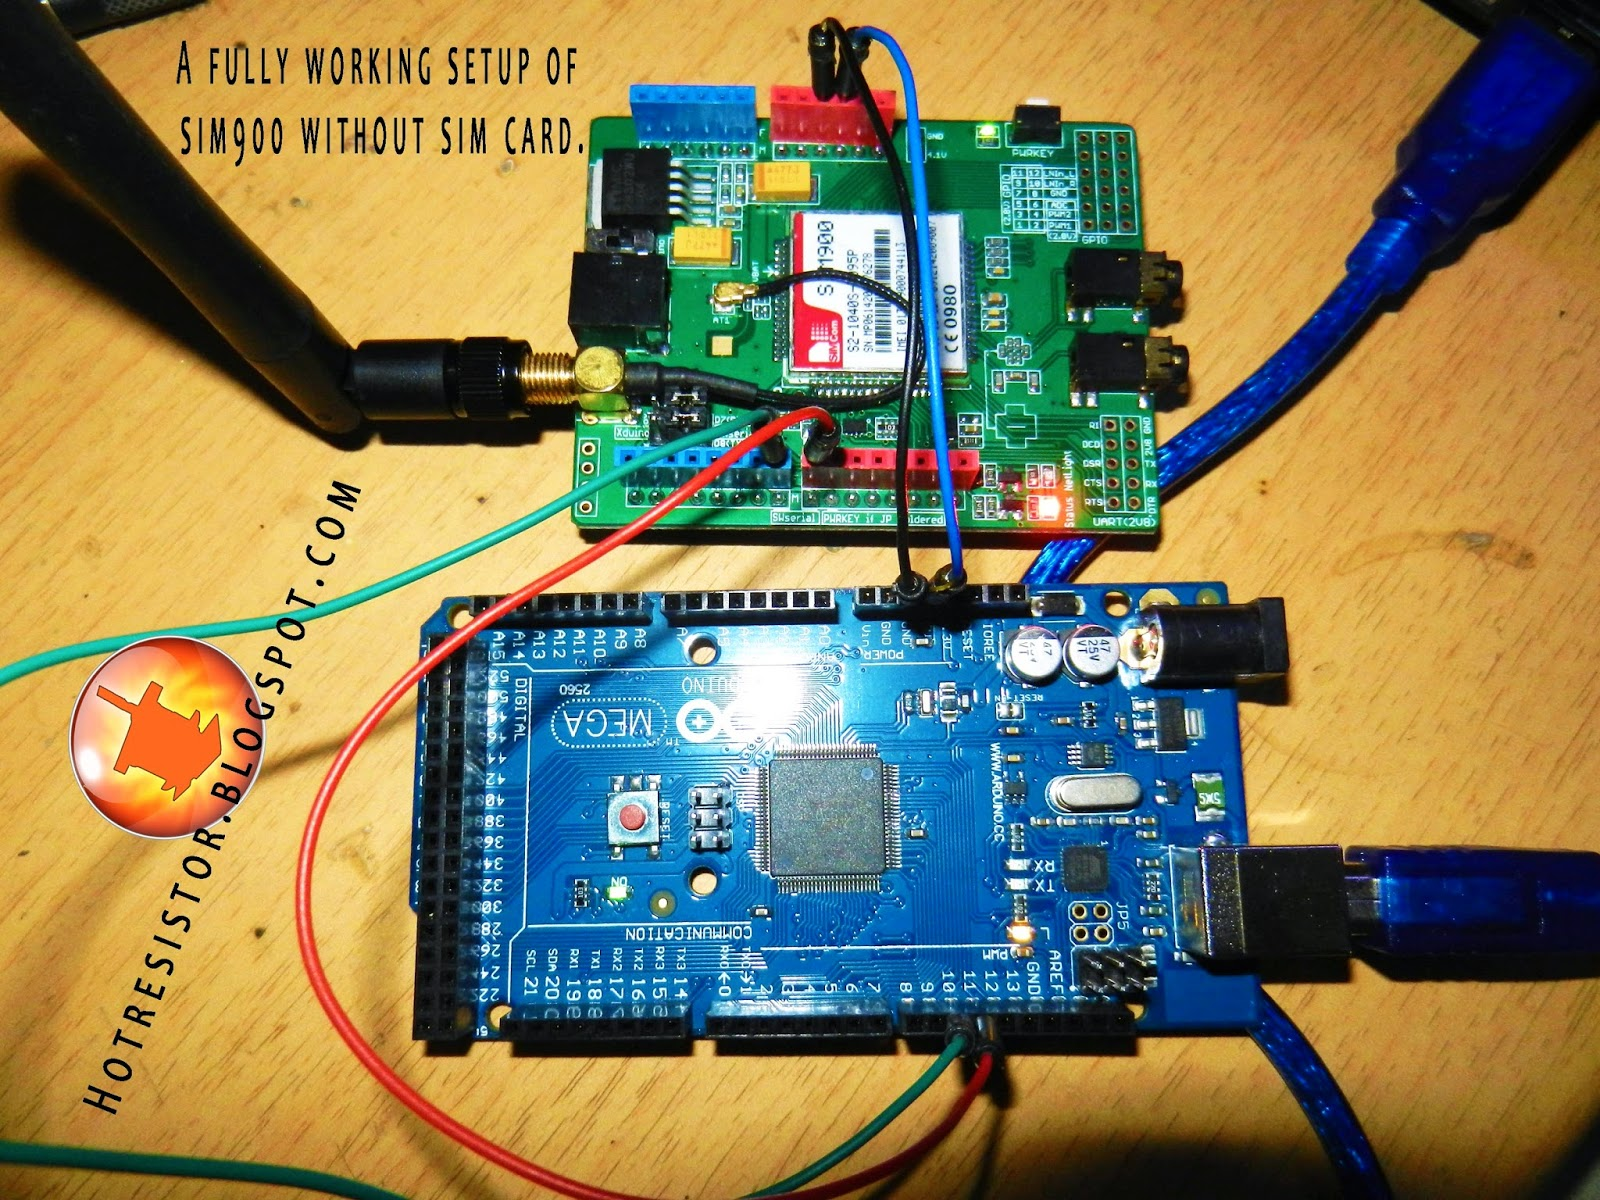 Arduino Mega 2560 Pin Diagram Goodman Heat Pump Wiring Thermostat Interfacing Simcom Sim900 With - Breif And Exact Tutorial ~ Hot Resistor ...